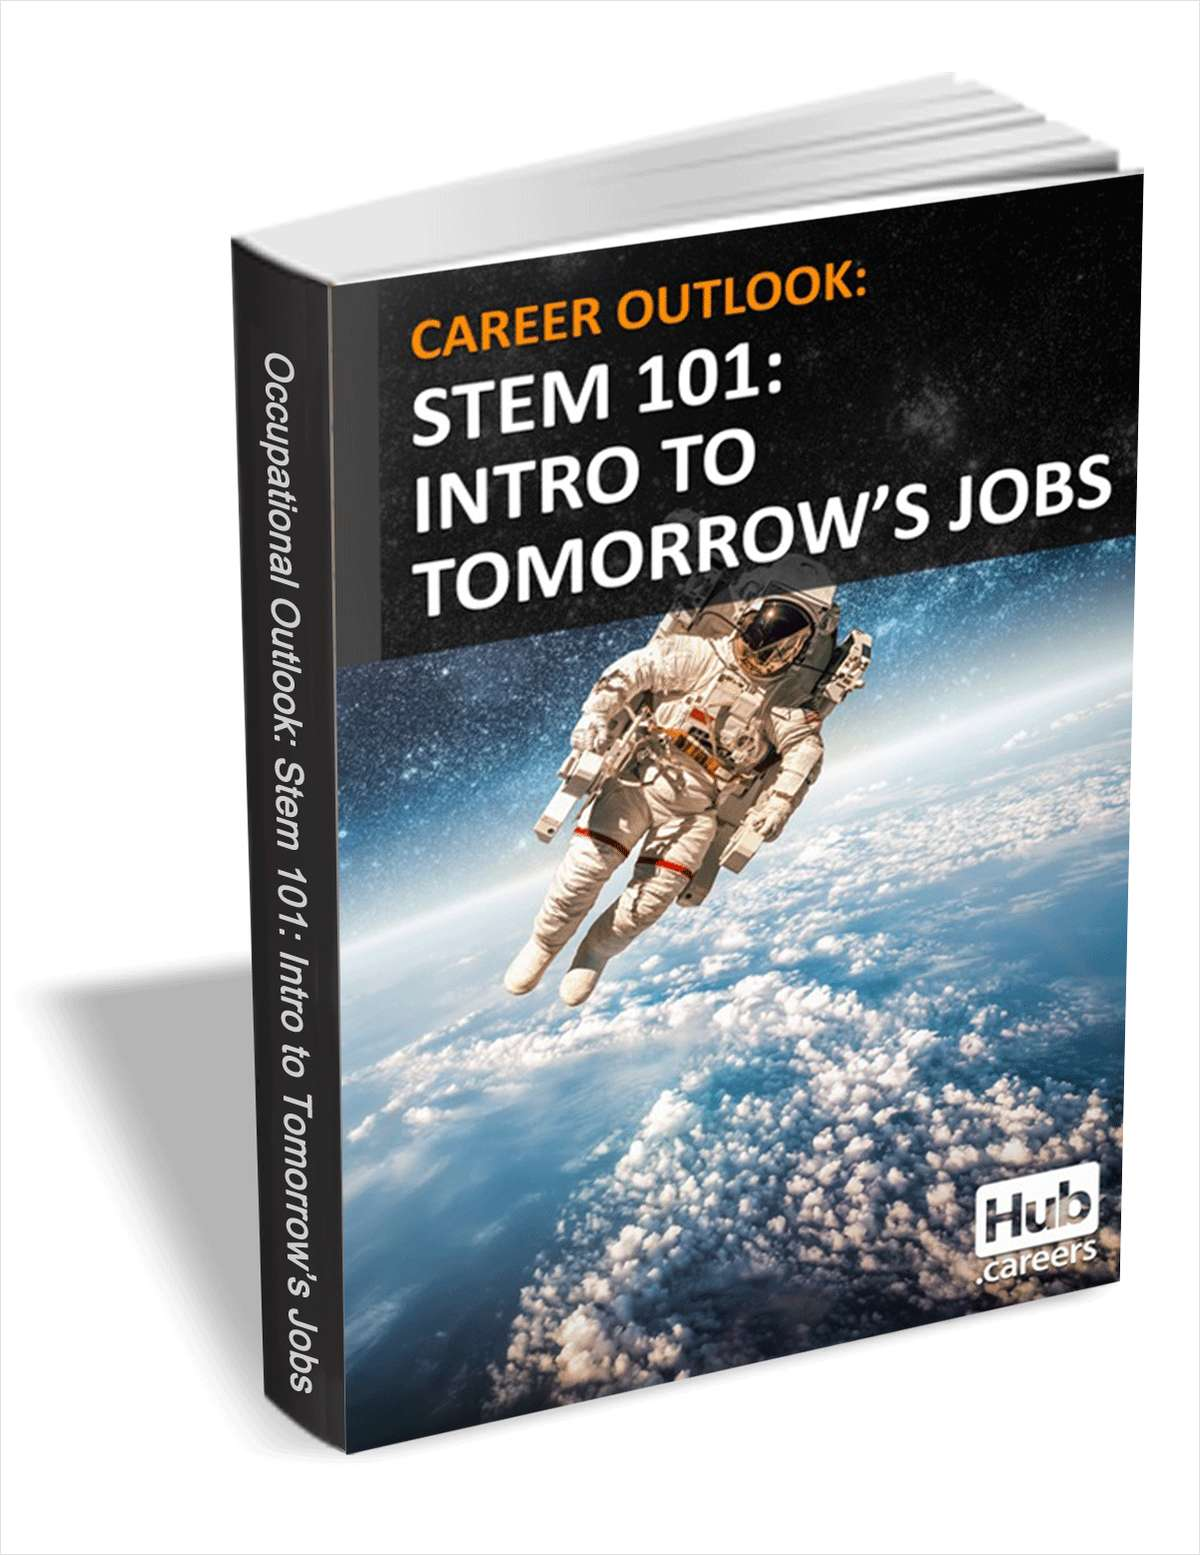 STEM 101: Intro to Tomorrow's Jobs - Career Outlook